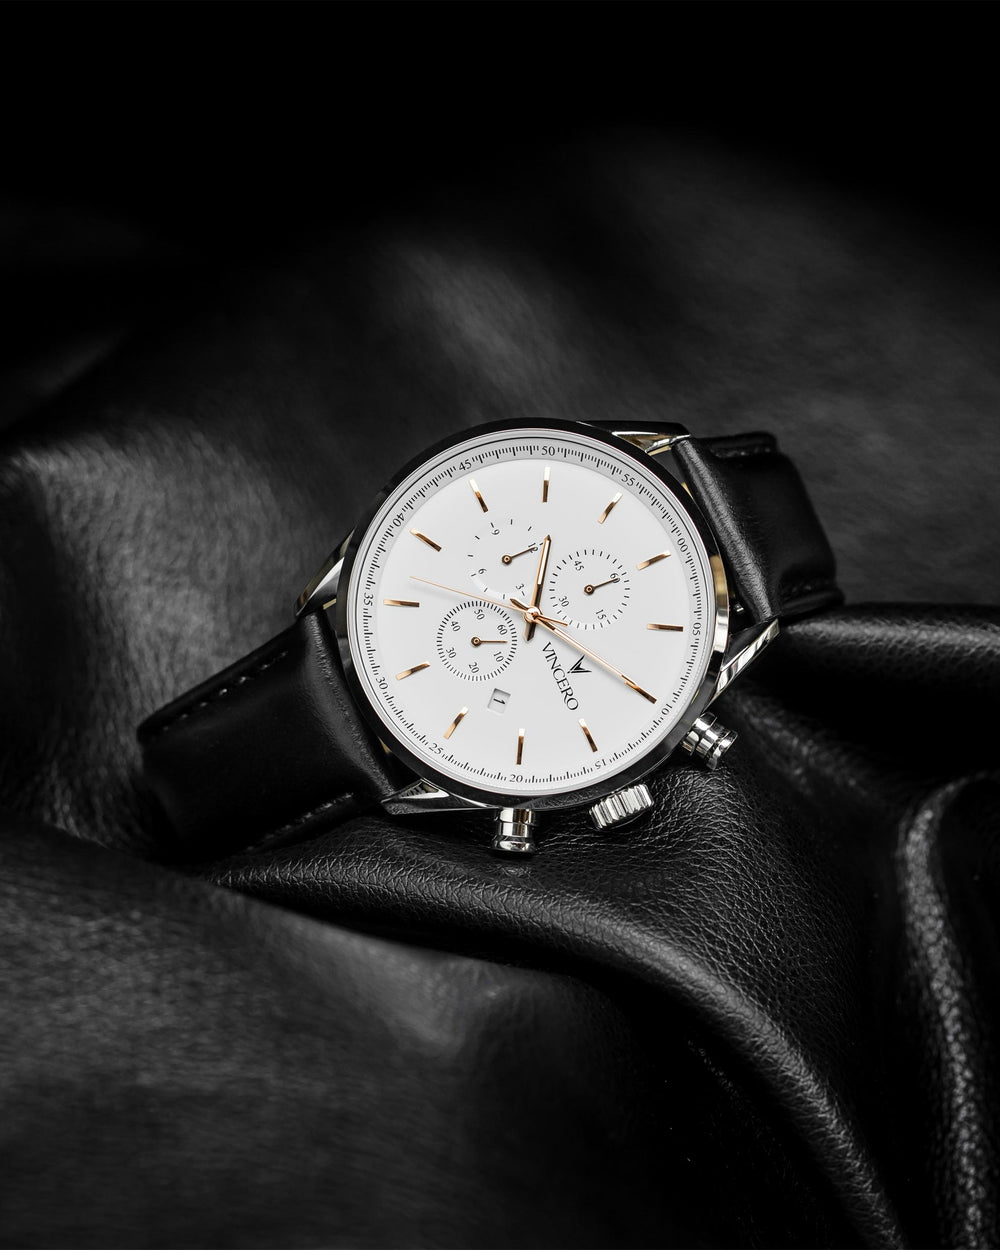 Chrono S Black Italian Leather Strap White Watch Face Silver Case Clasp Rose Gold Accents